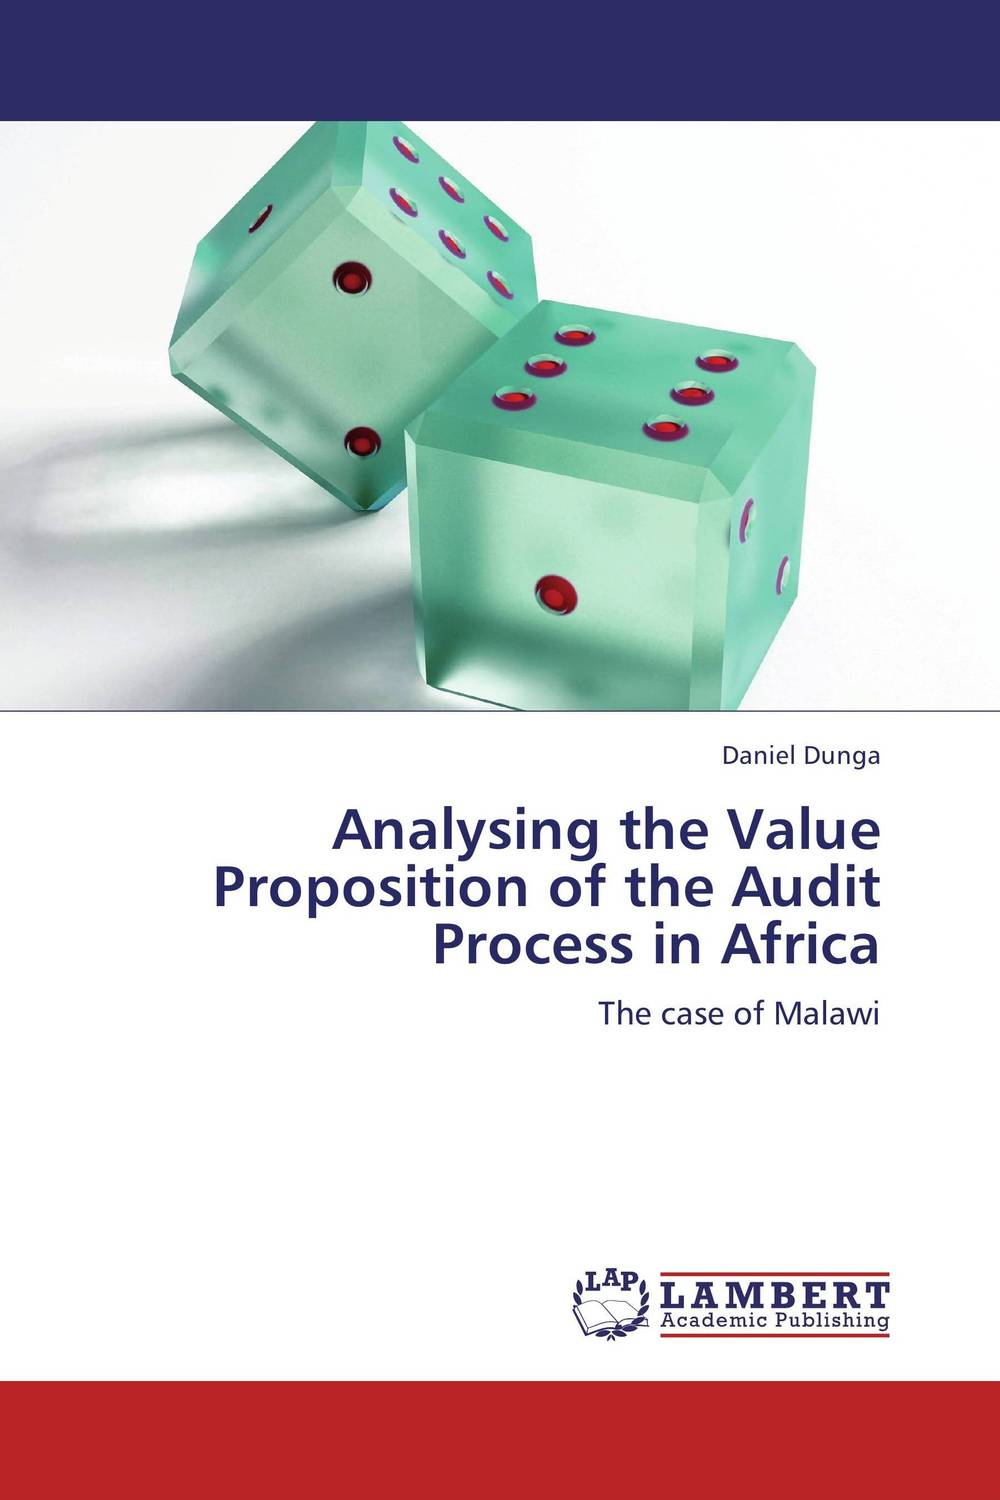 Analysing the Value Proposition of the Audit Process  in Africa james paterson c lean auditing driving added value and efficiency in internal audit